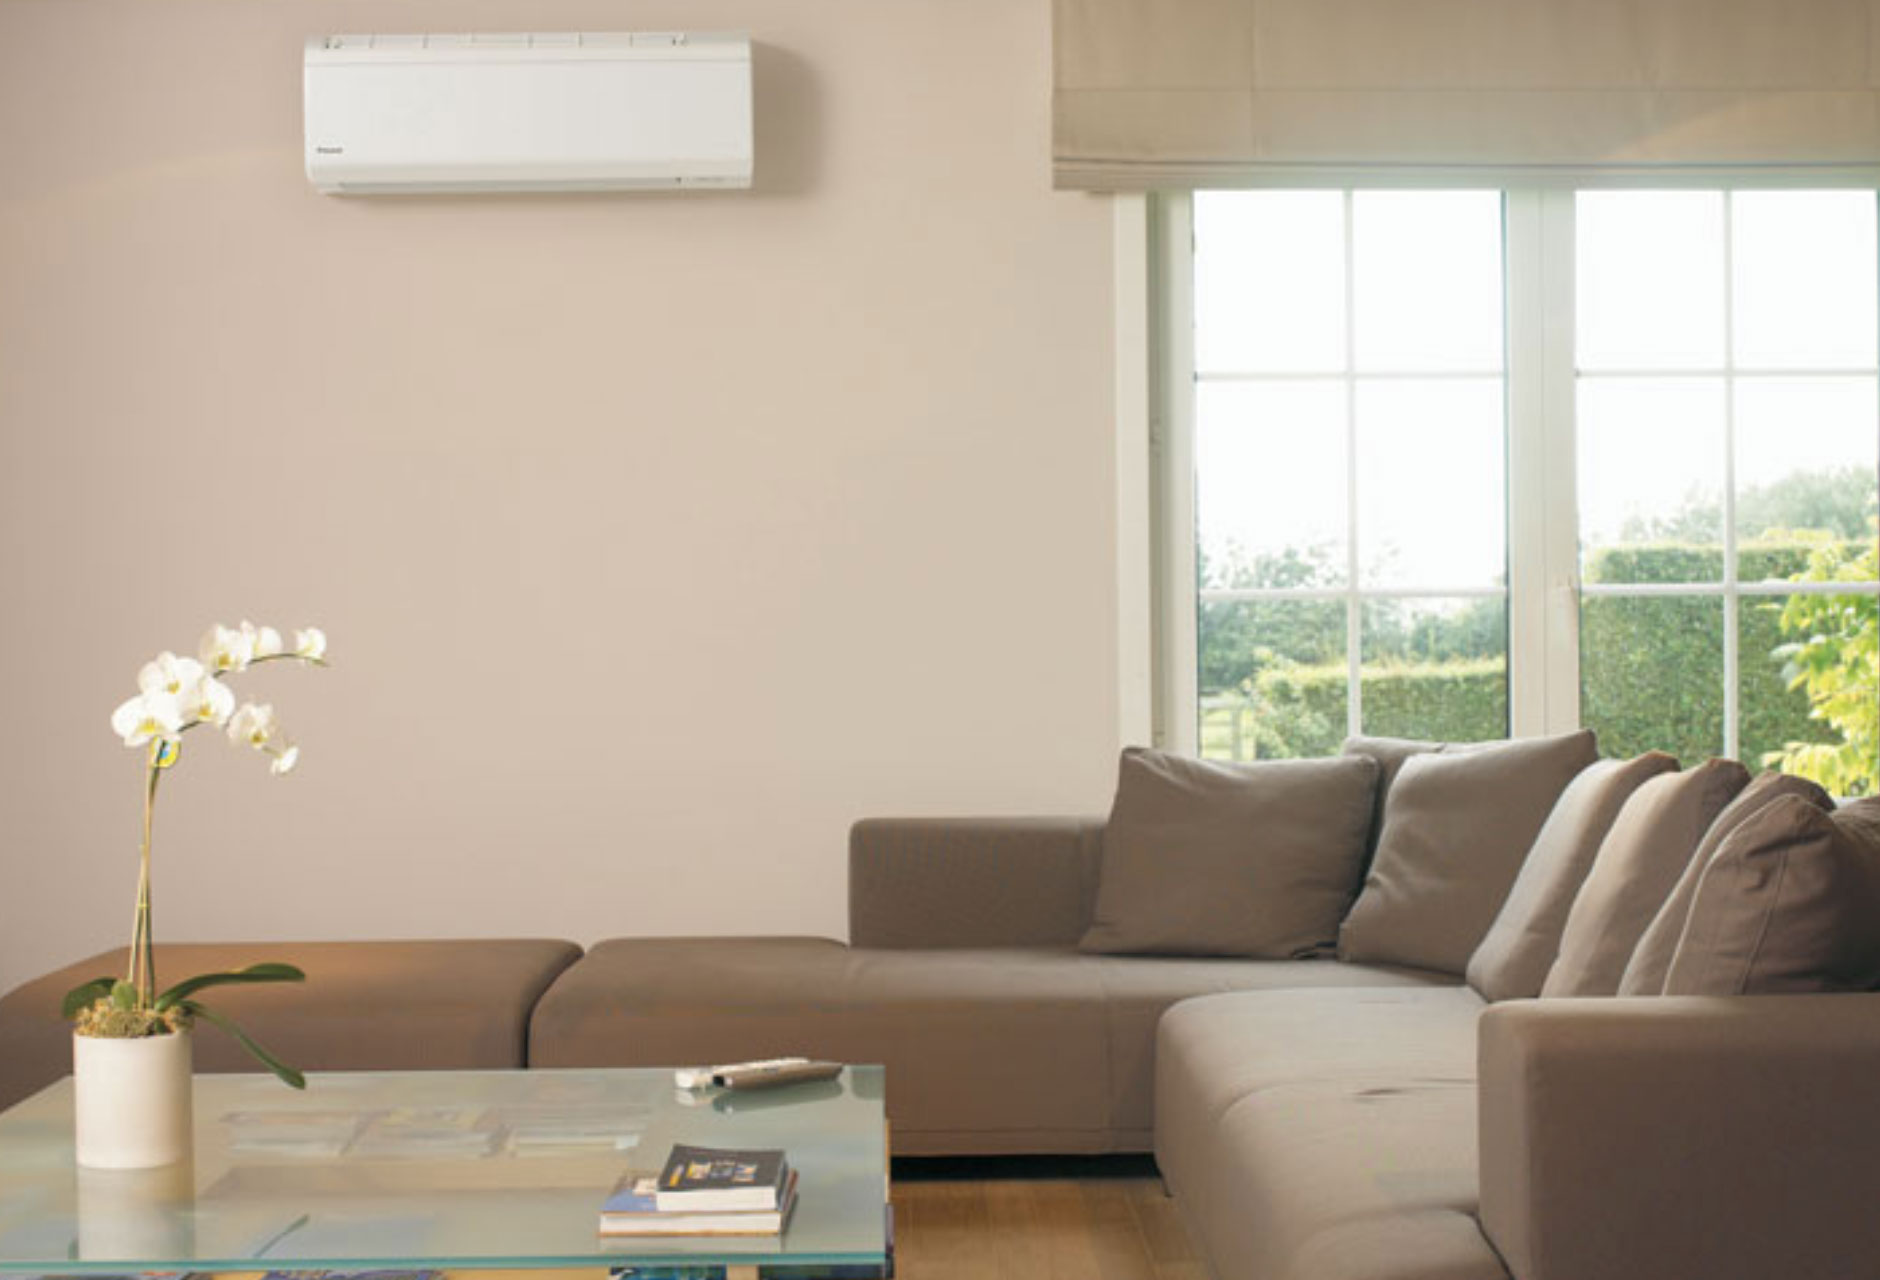 Mitsubishi Electric Air Conditioning unit in a living room